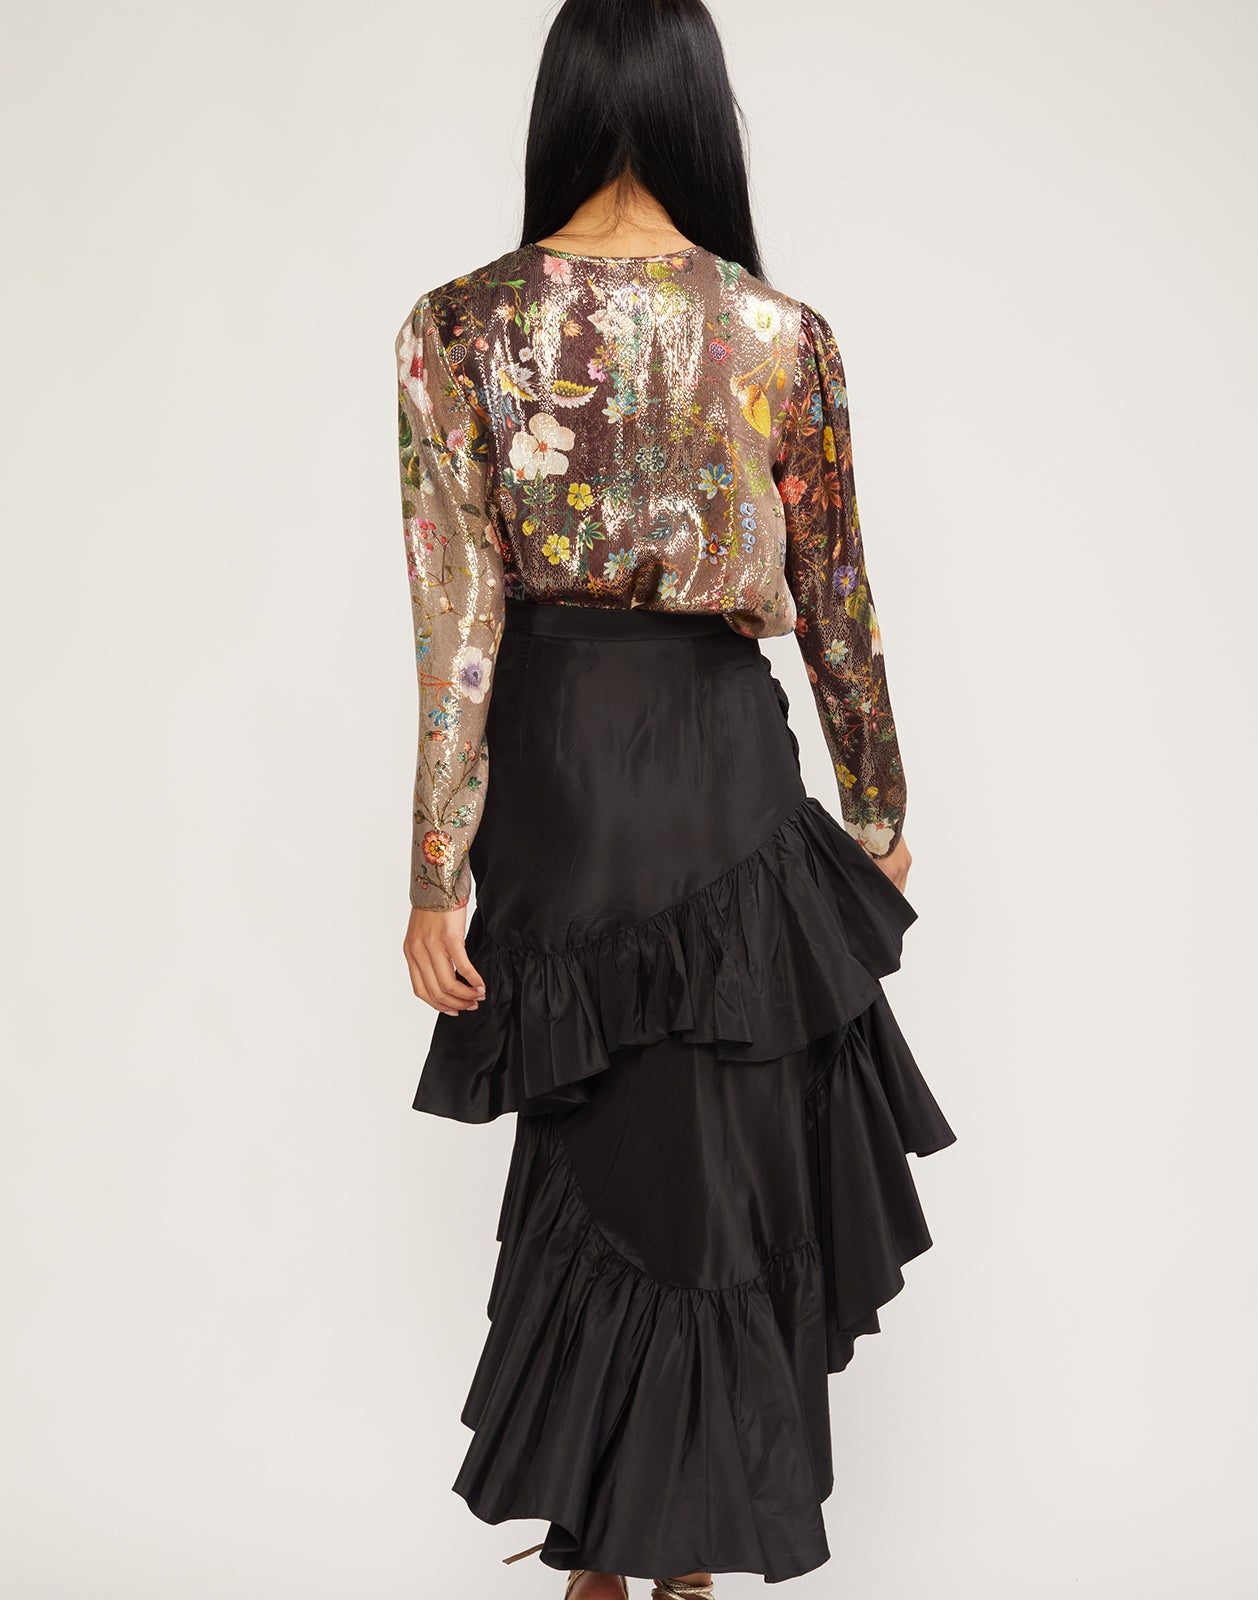 Back view of the Camila tiered ruffle skirt in black silk taffeta.